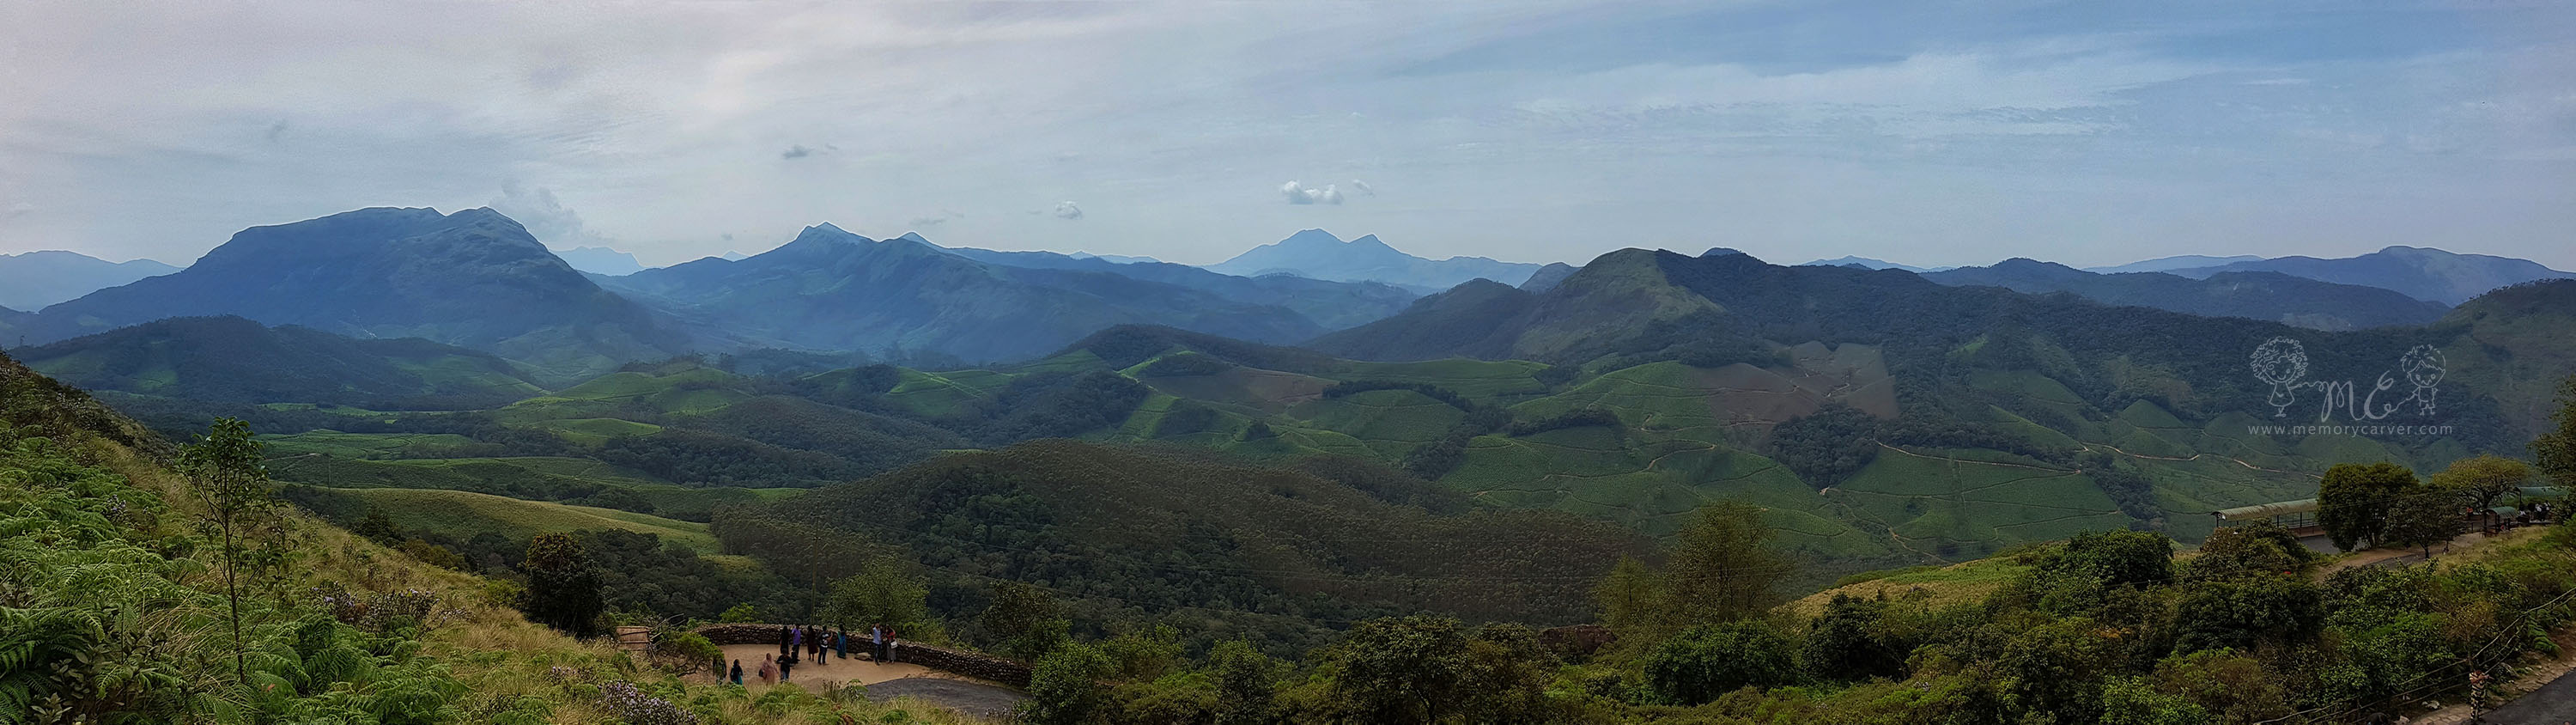 Munnar Neelakurinji trek - panorama at eravikulam national park